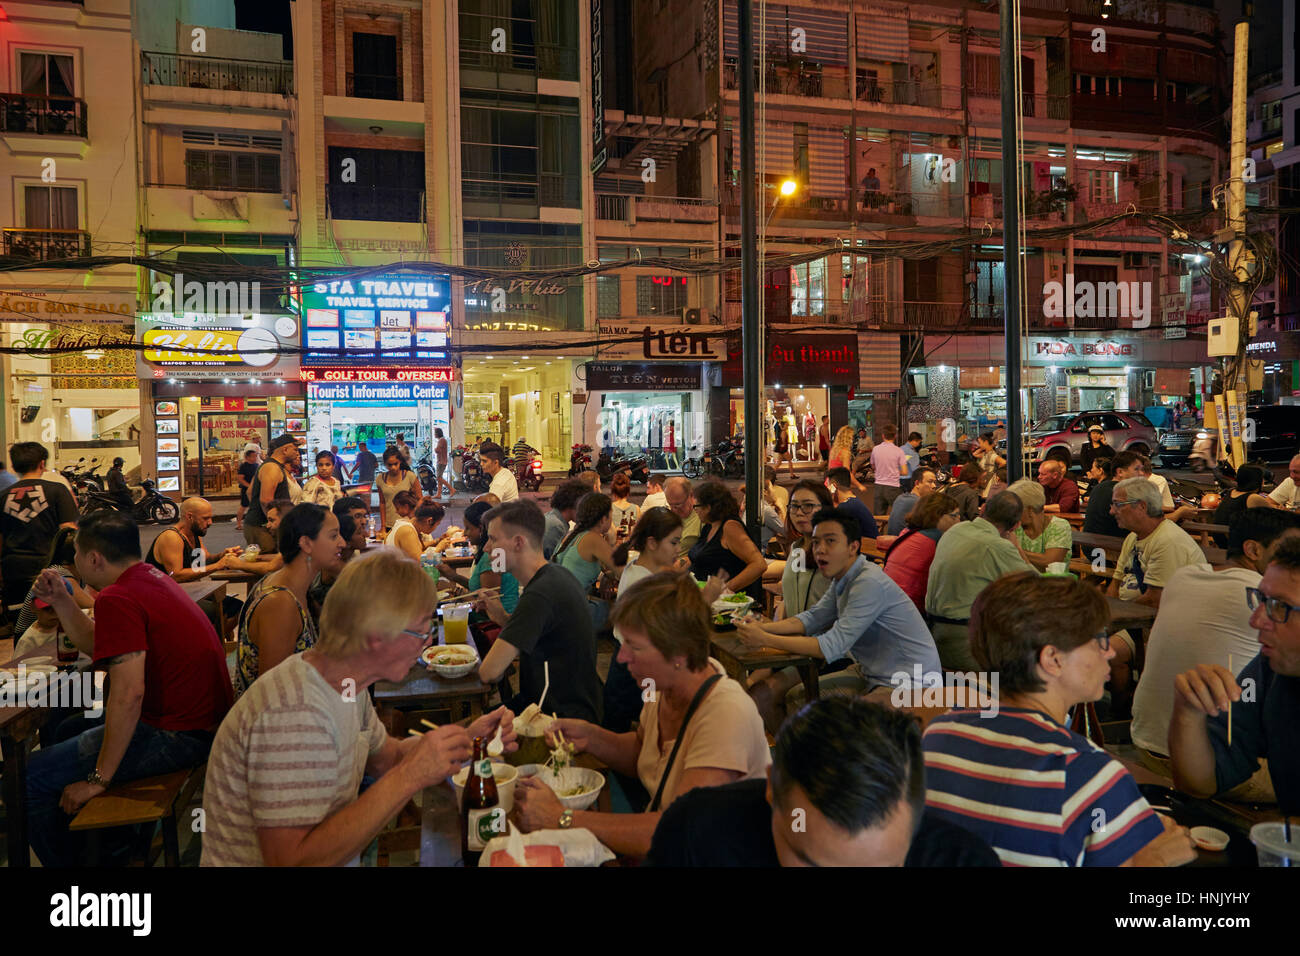 Stock Photo - Ben Thanh Street Food Market, Ho Chi Minh City (Saigon), Vietnam